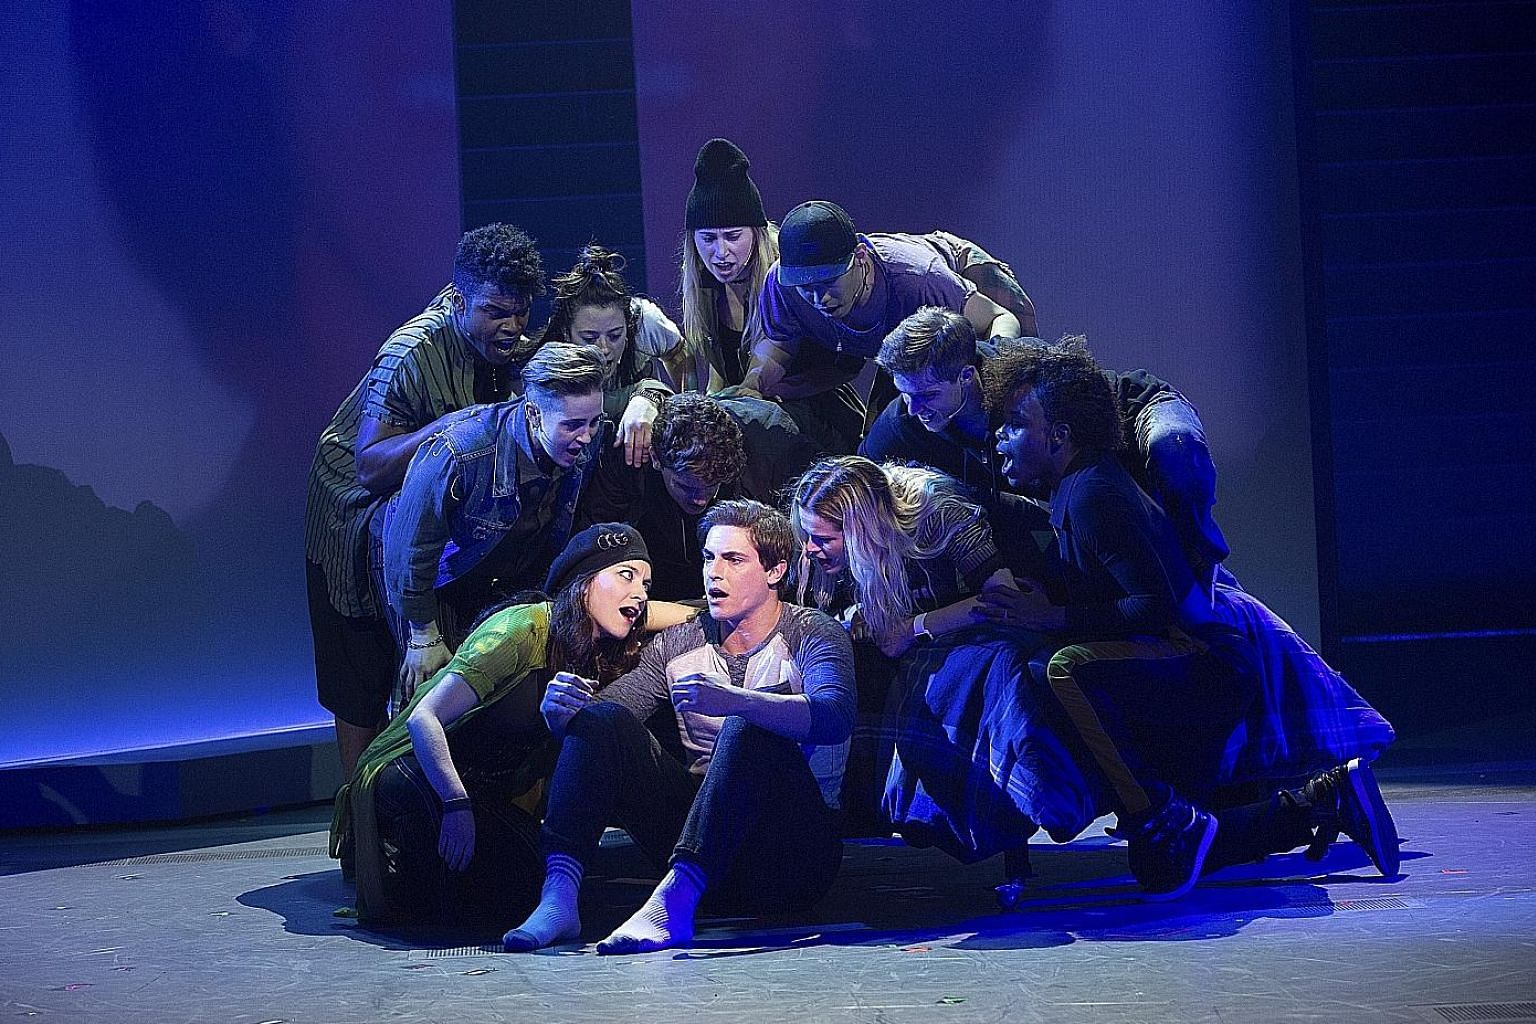 The Jagged Little Pill musical (left) is based on a Grammy-winning album by Alanis Morissette (above).